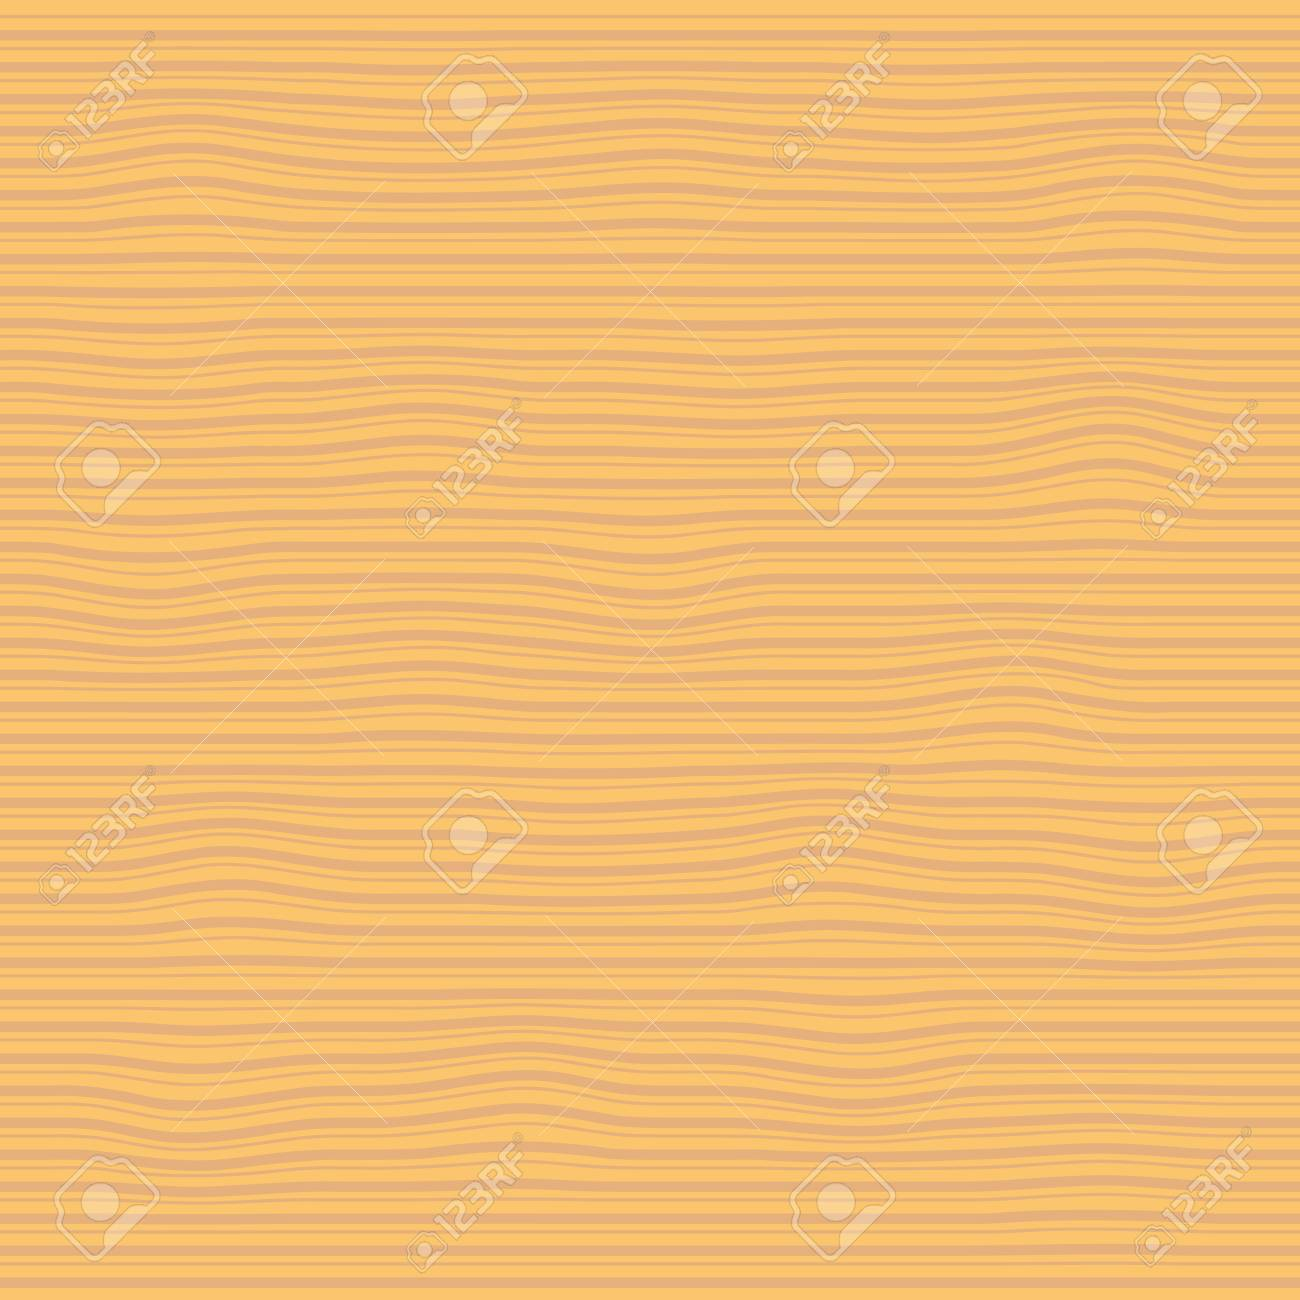 Wood Grain For Background Wooden Texture Light Wood Background